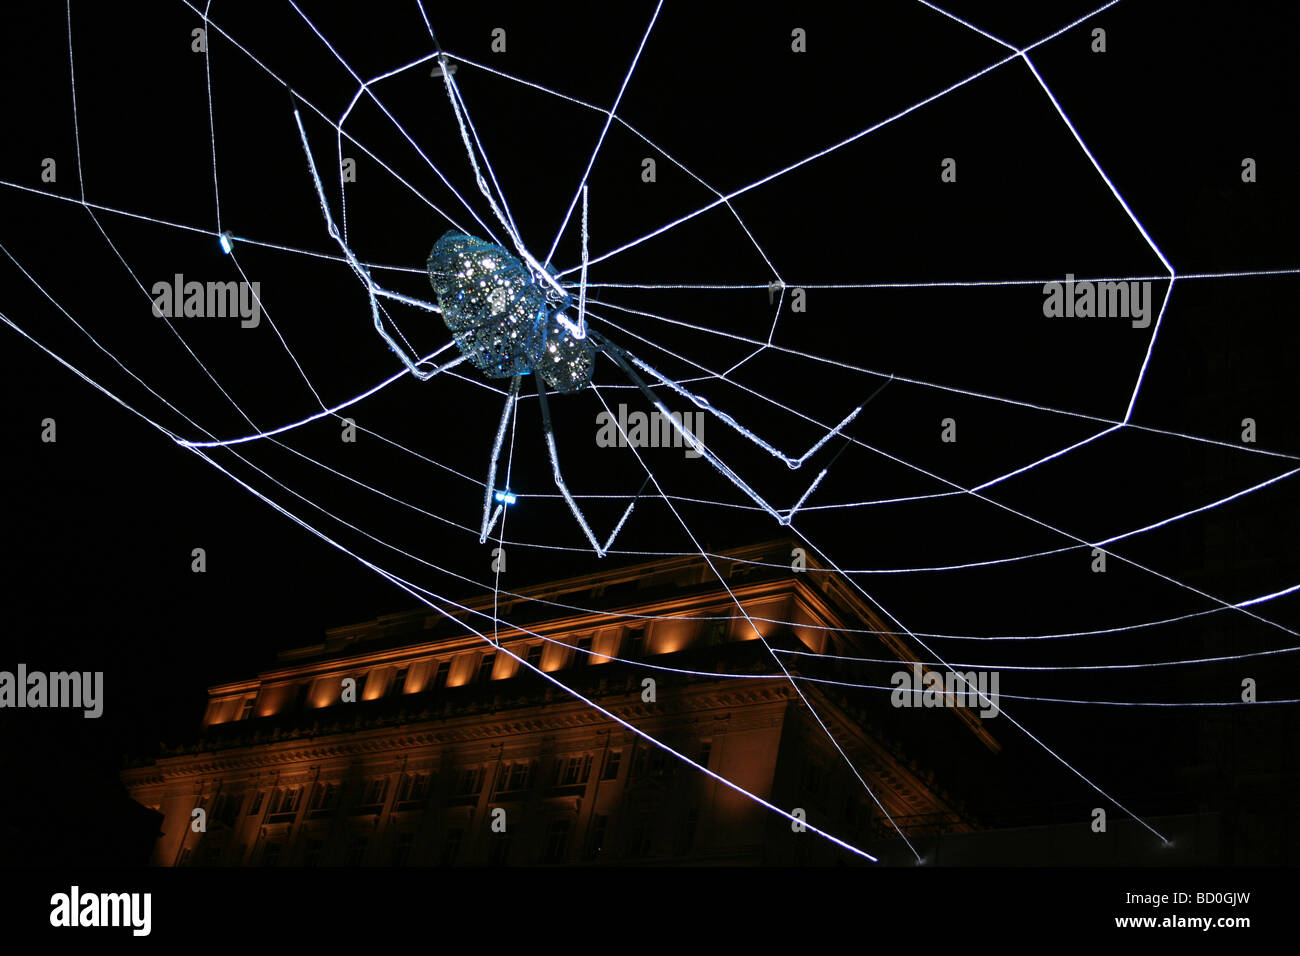 Spider on the 'Web Of Light' Art Installation Project In Liverpool, Merseyside, UK - Stock Image